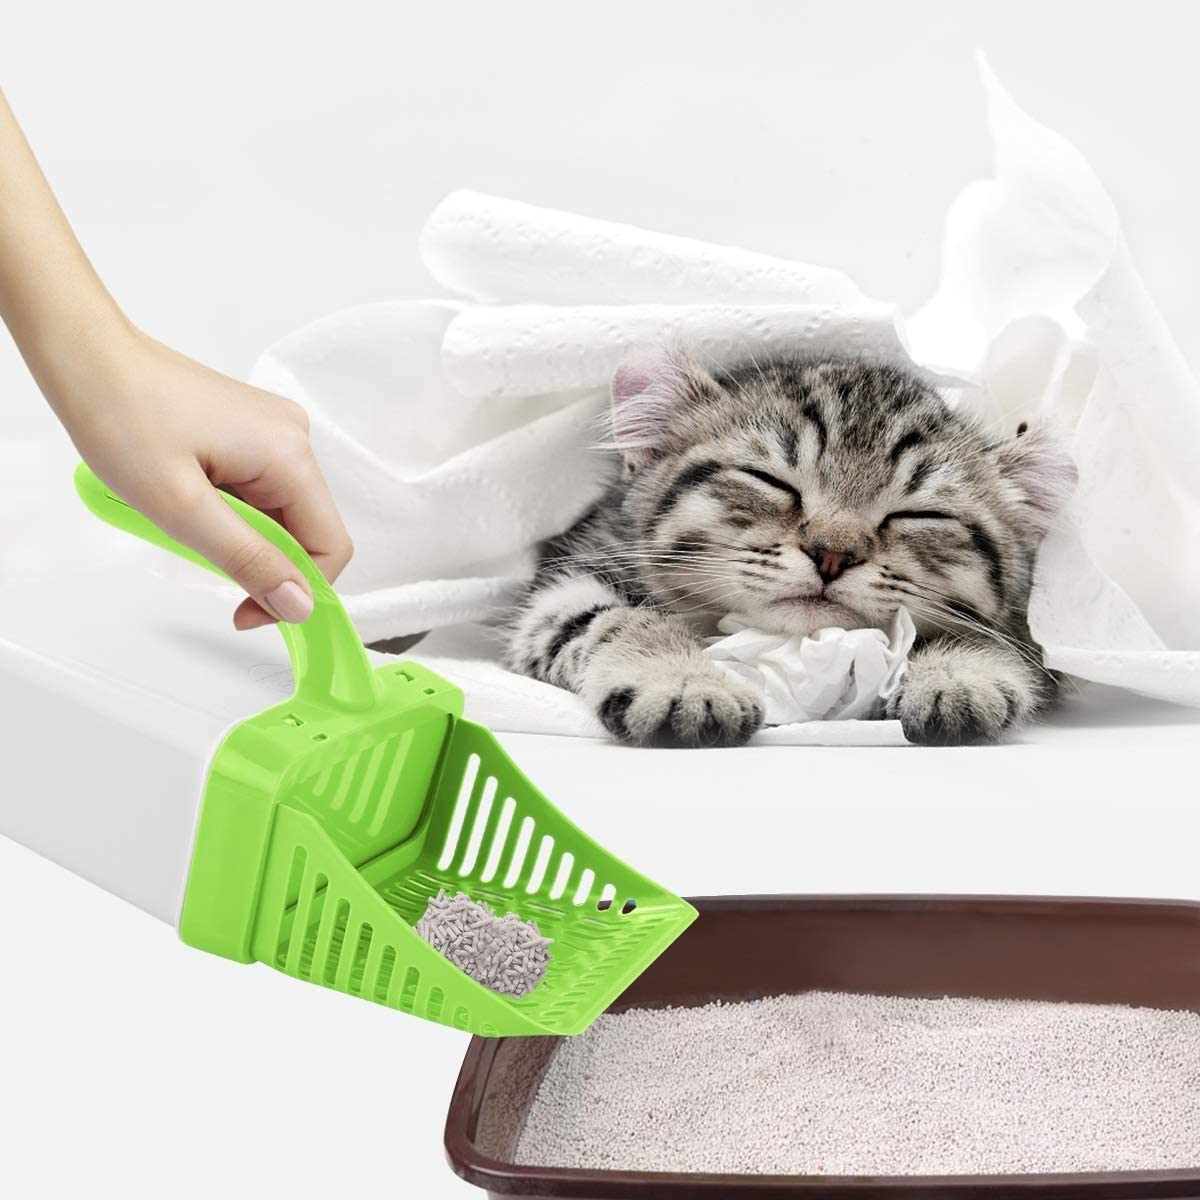 Dr.Cheol Cat Litter Shovel Scoop Plastic with Stand,Cat Litter Shovel with Bin,Litter Scooper for Cats with Stand